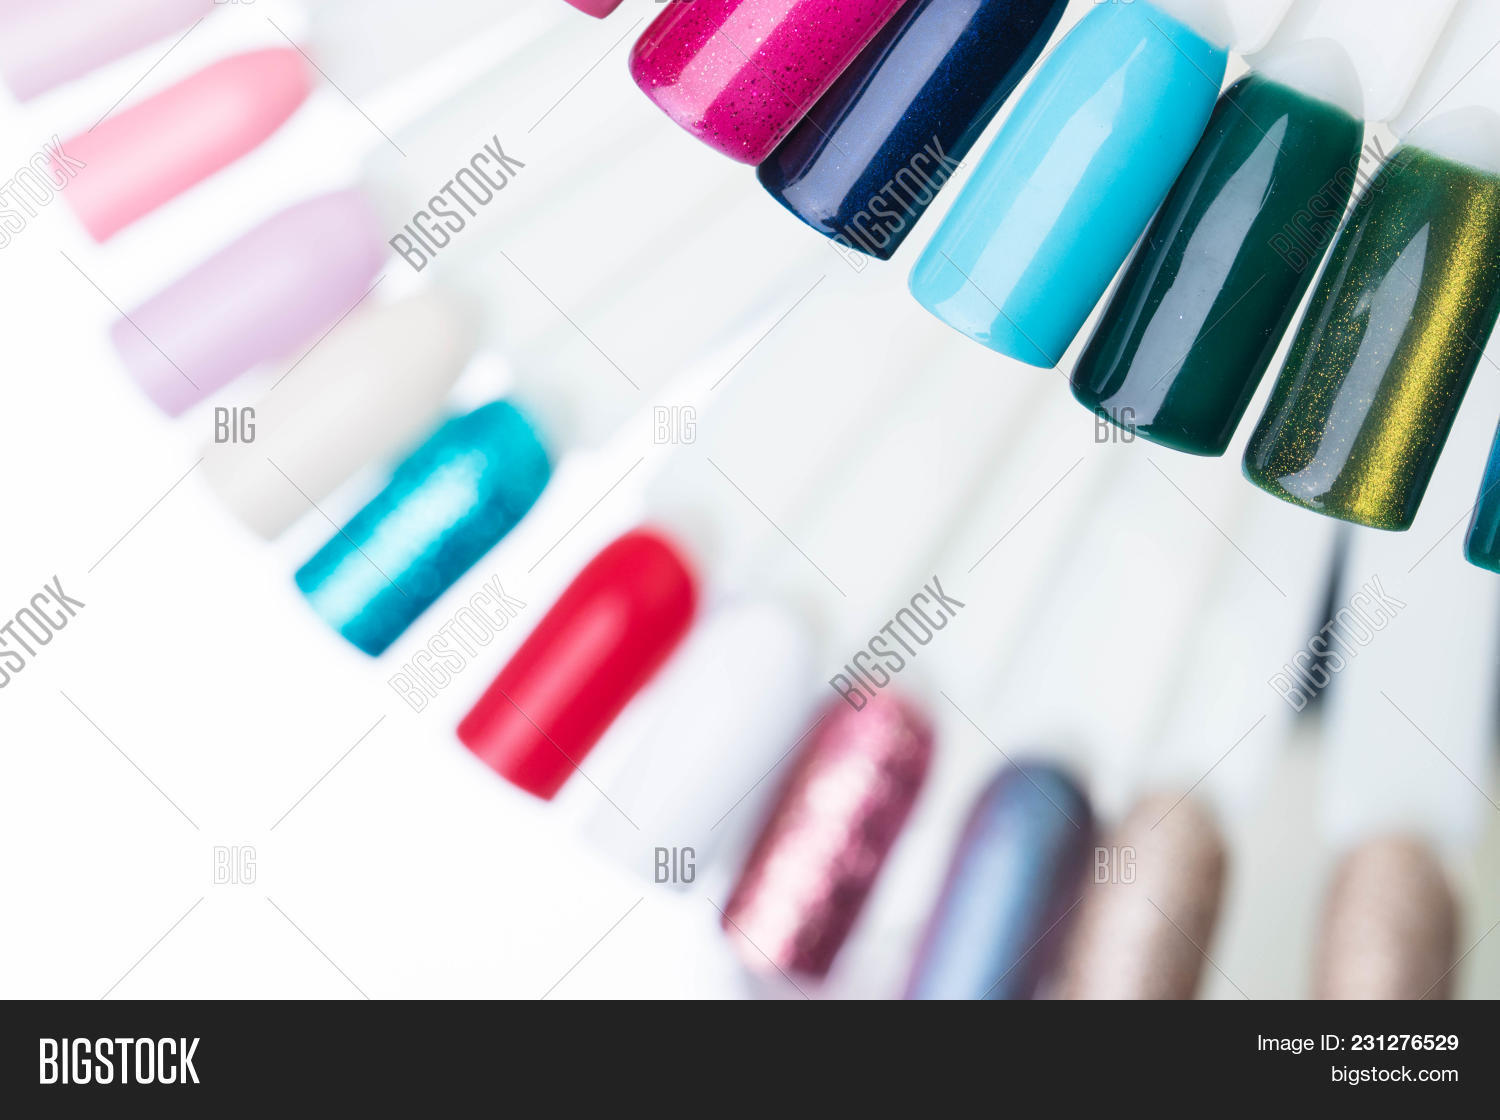 Palette Swatches Nail Image & Photo (Free Trial)   Bigstock